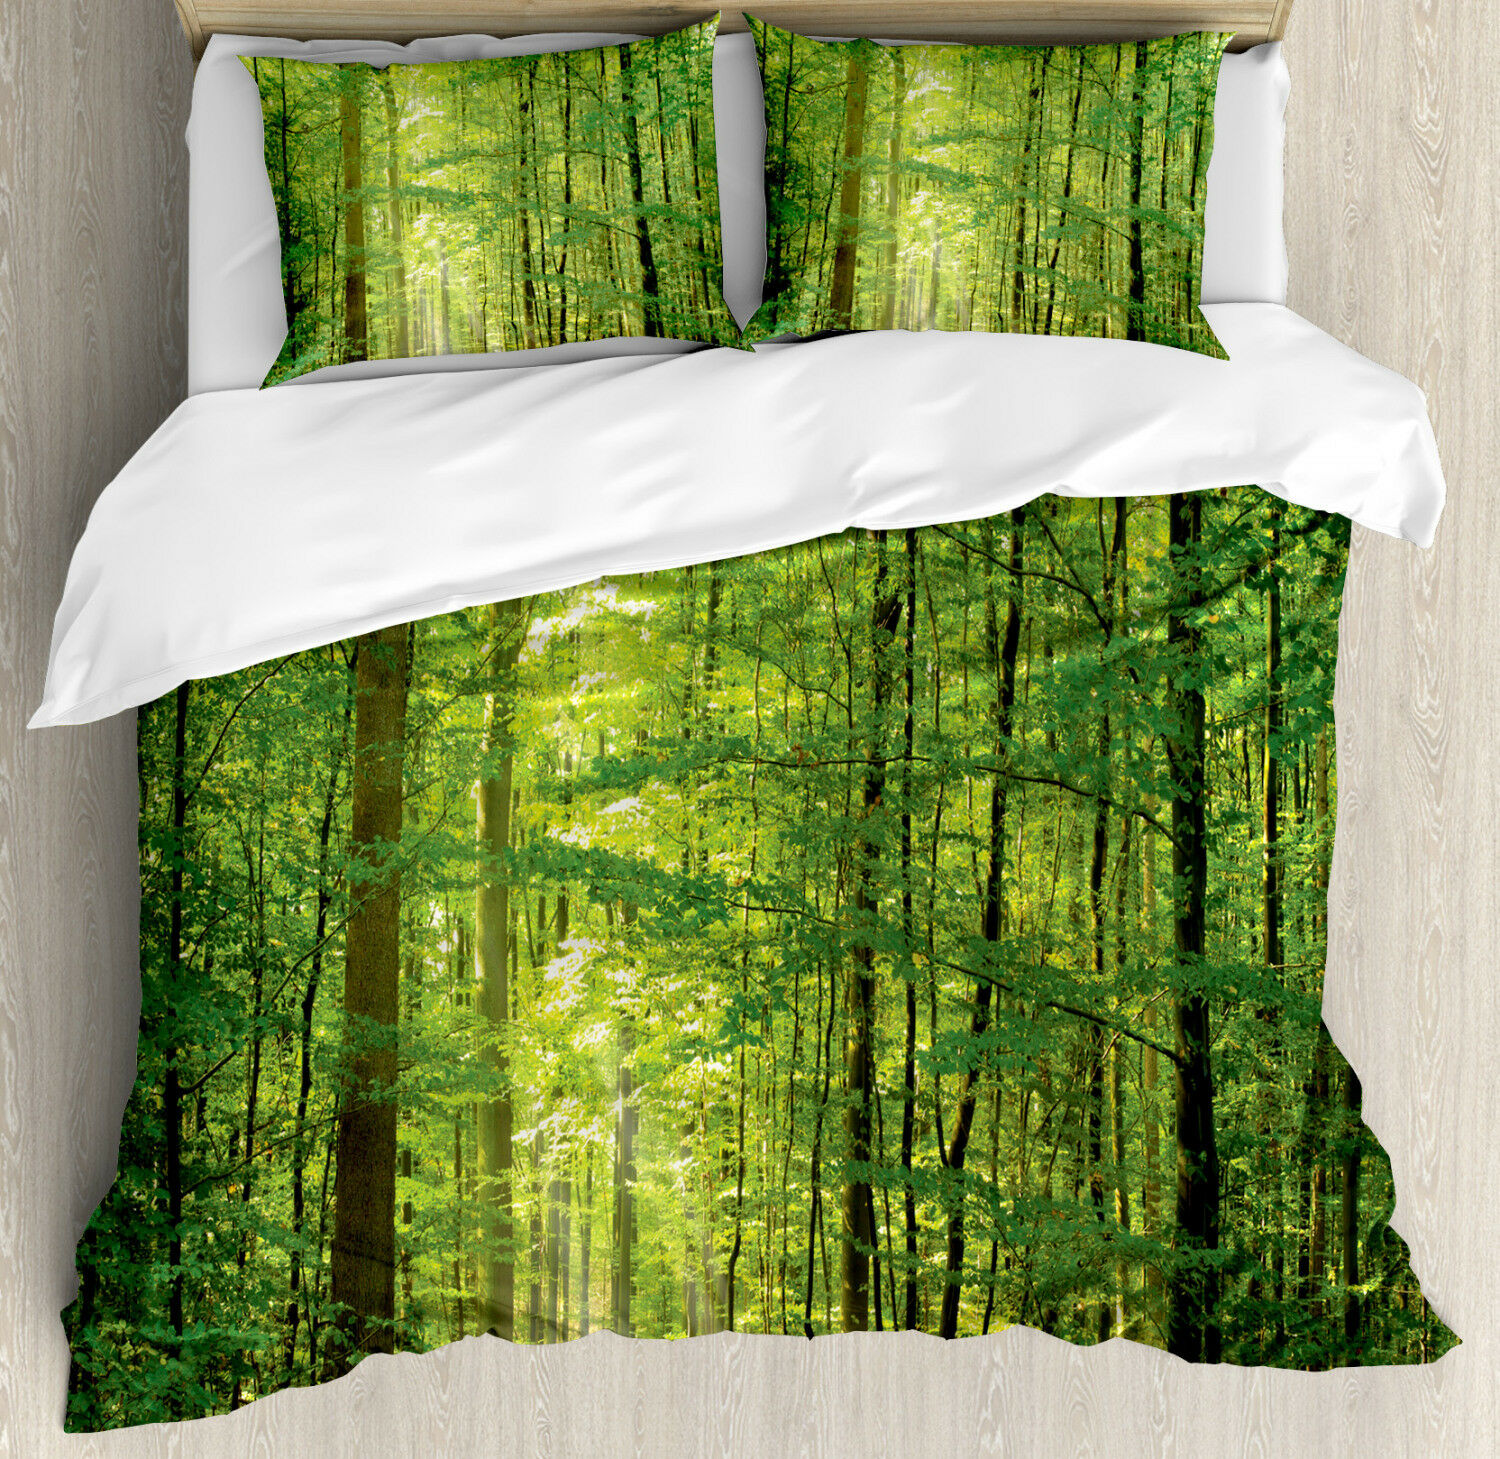 Woodland Duvet Cover Set with Pillow Shams Foliage Forest Summer Print